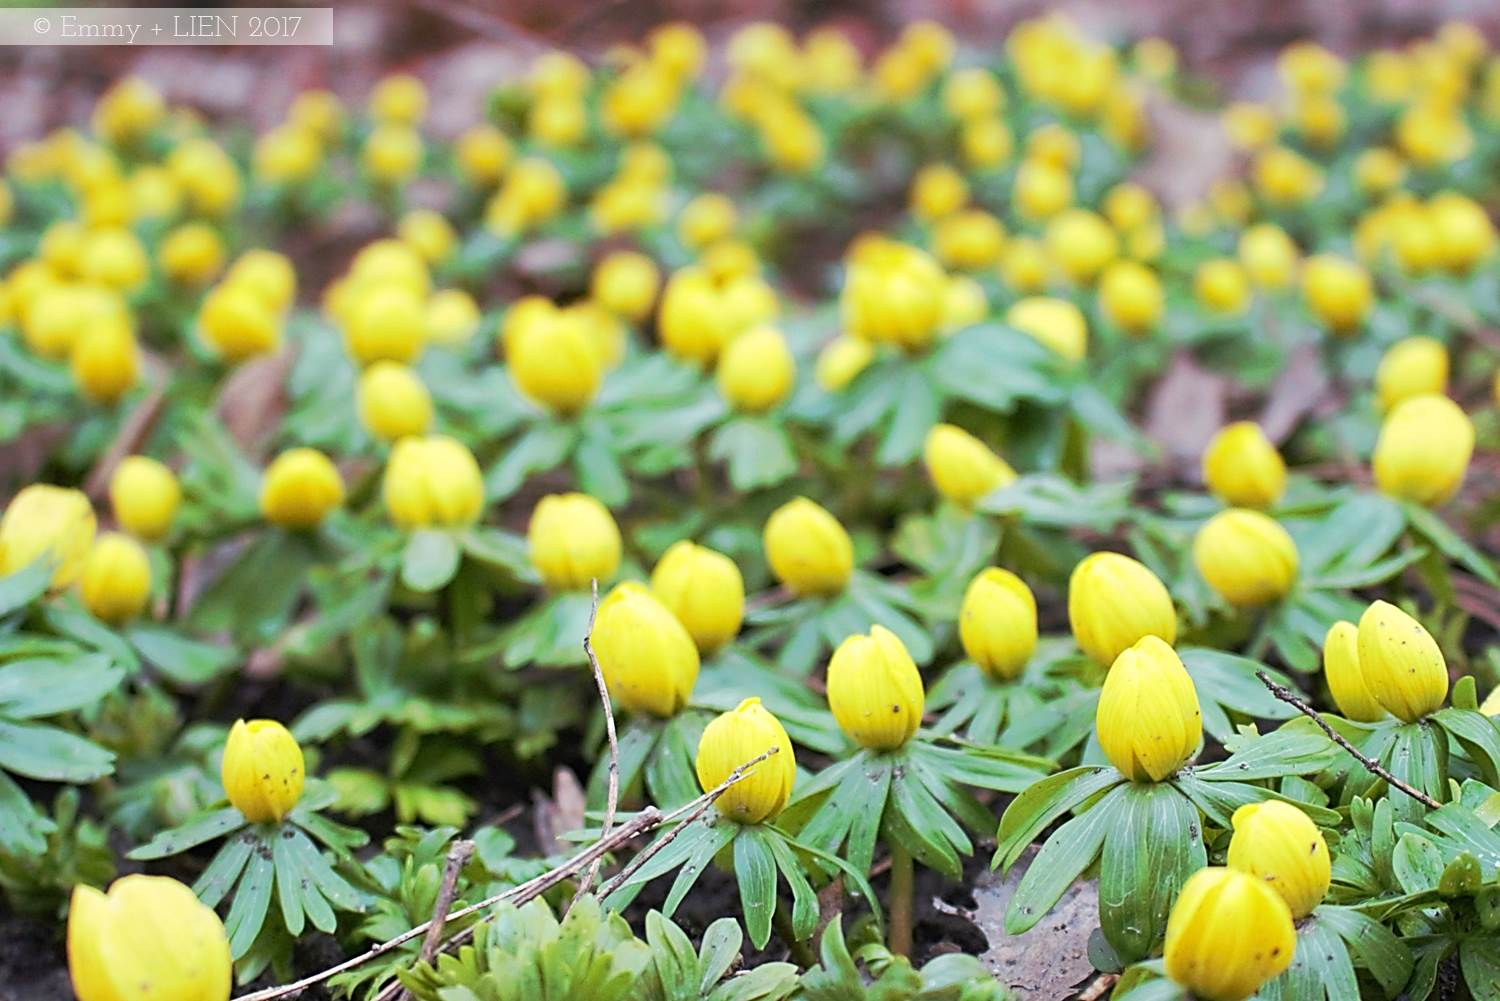 Winter aconites in Sweden